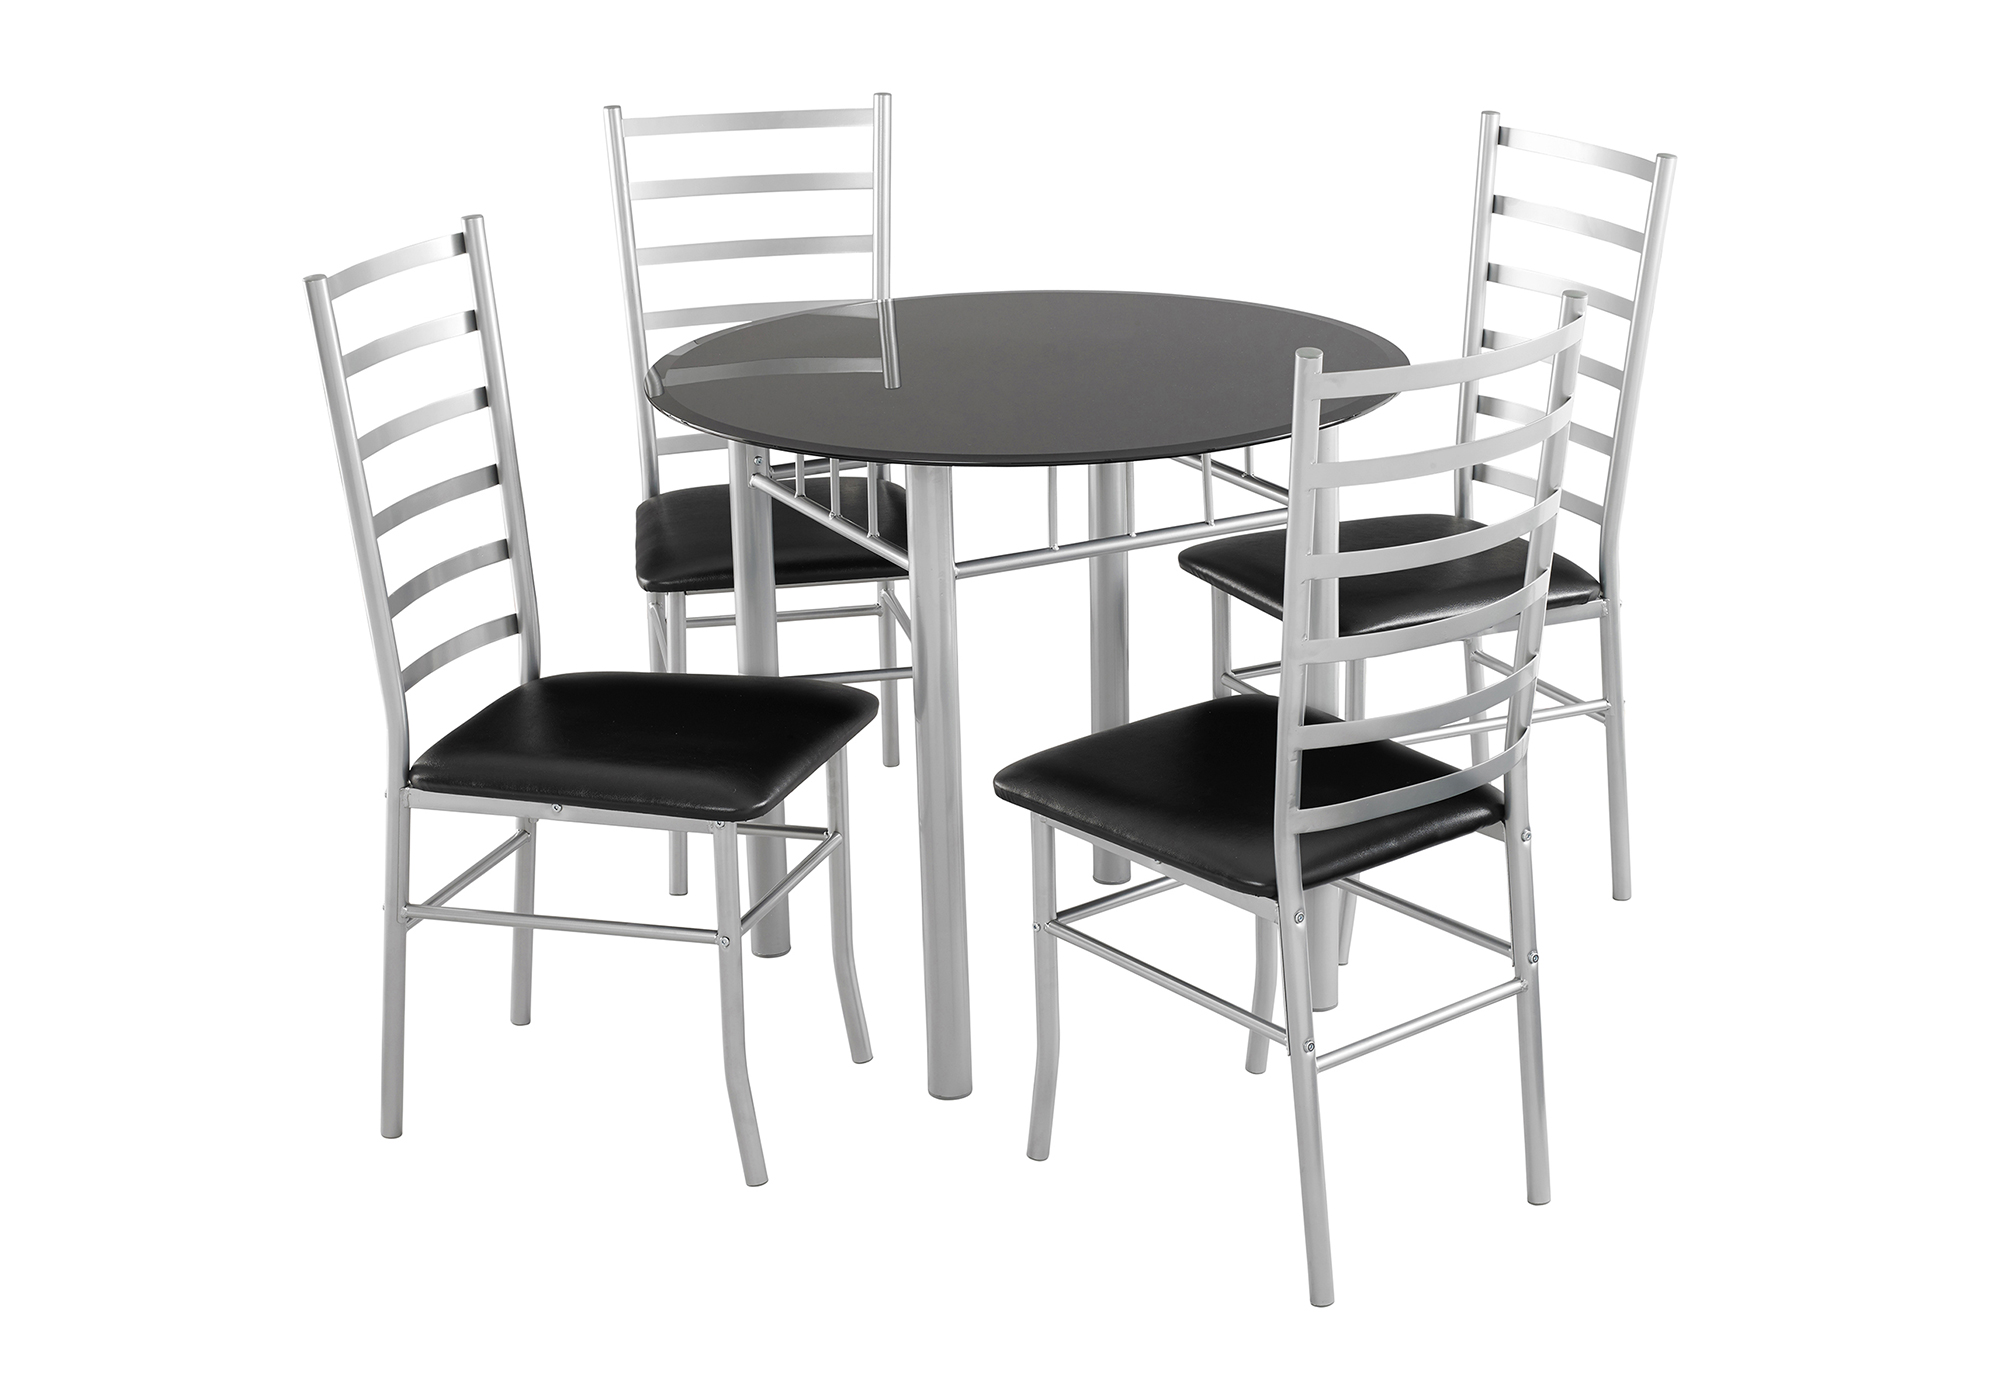 set of 4 chairs adjustable desk chair lincoln dining seater black glass table details about padded seats